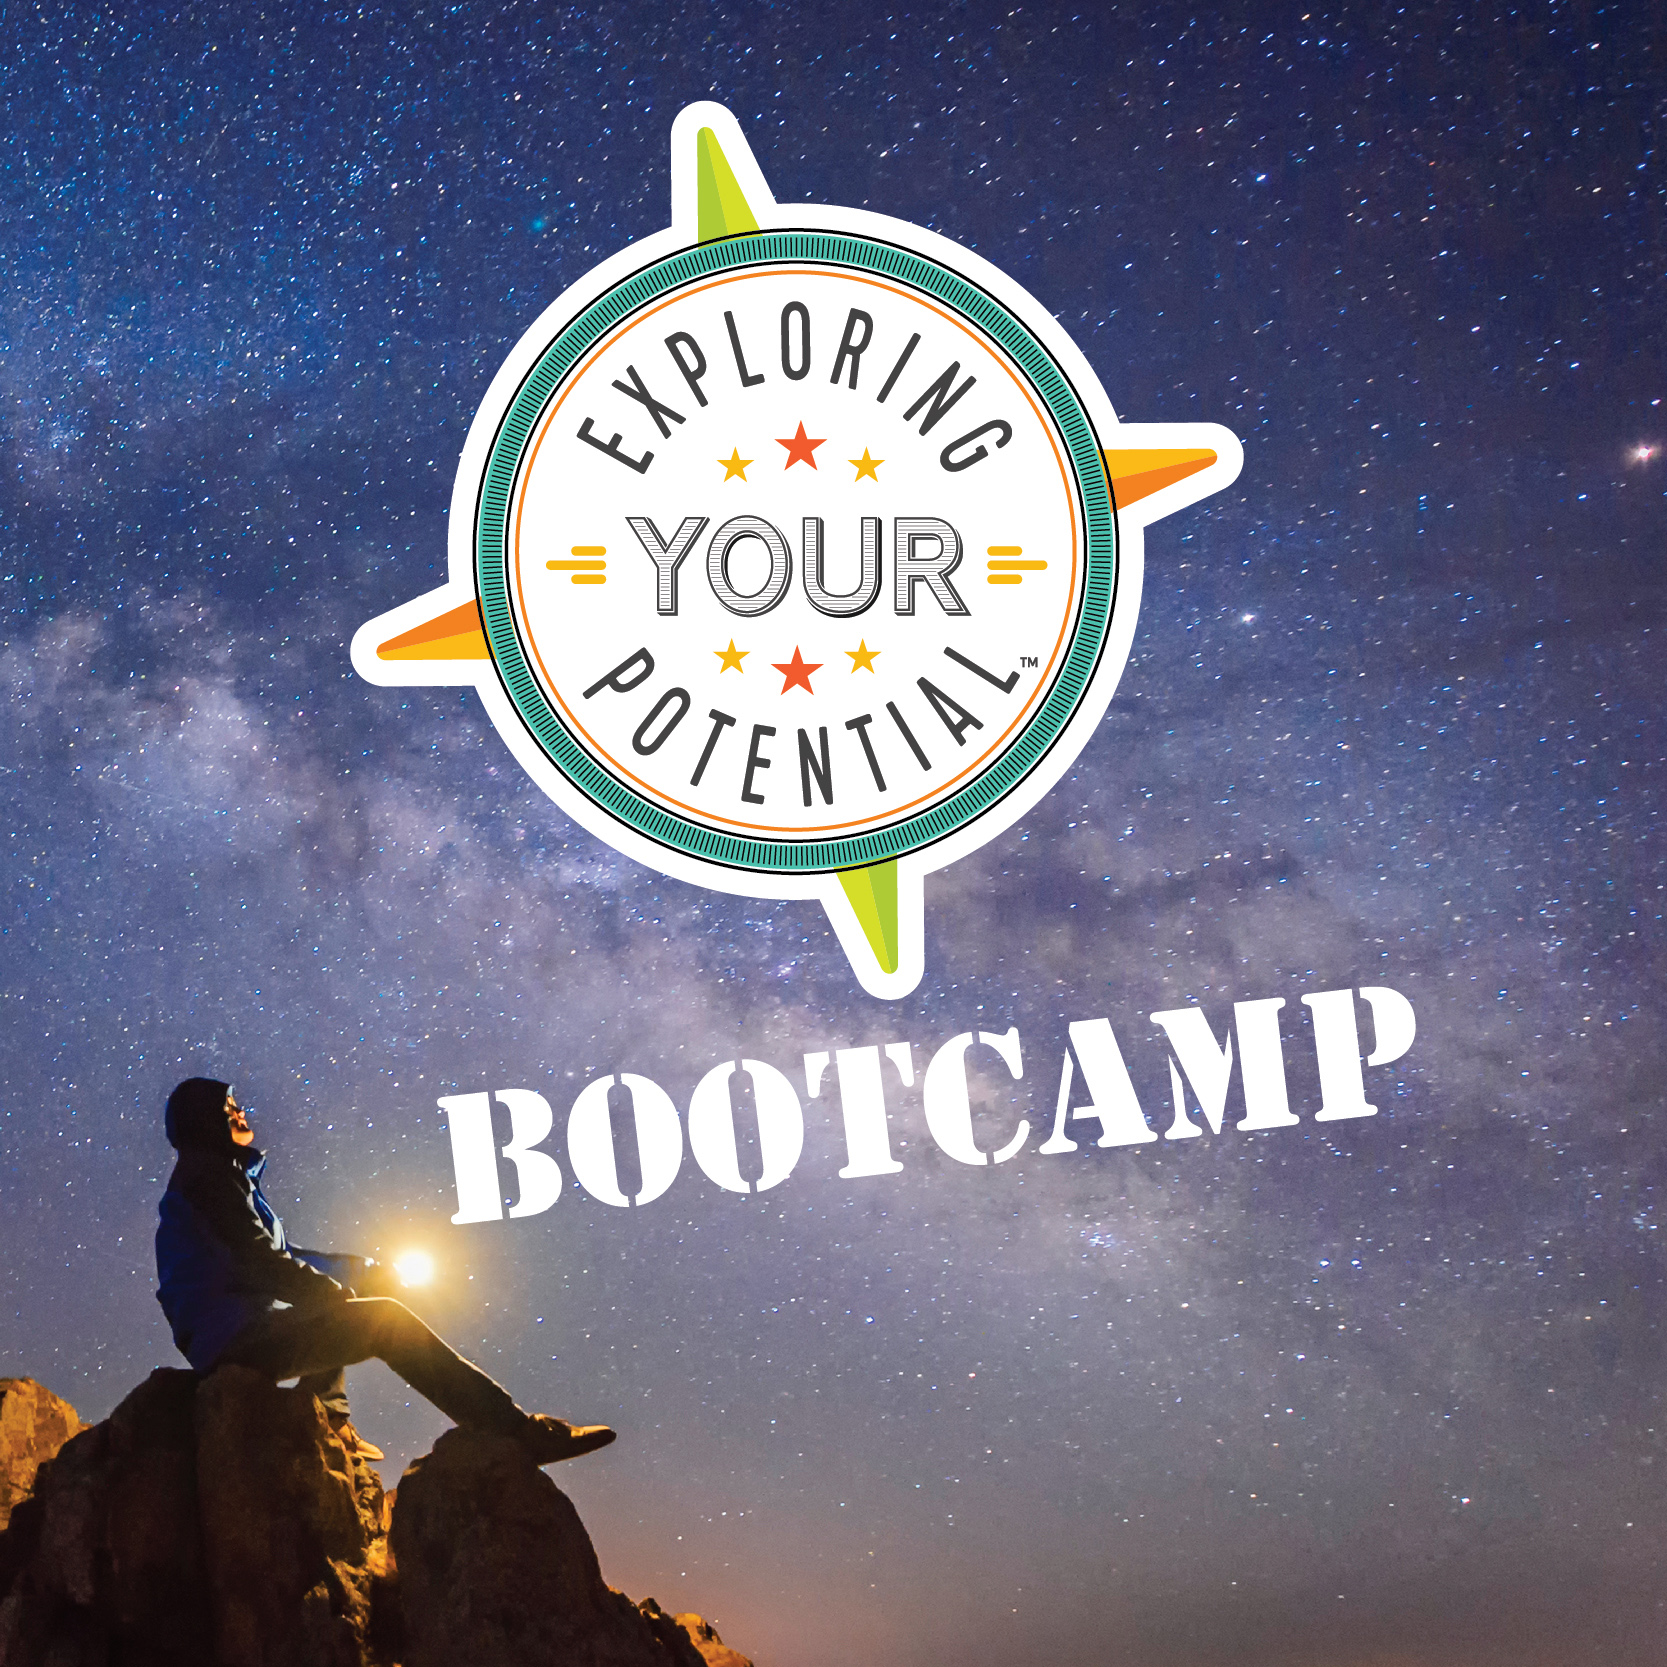 Image: Exploring Your Potential Bootcamp